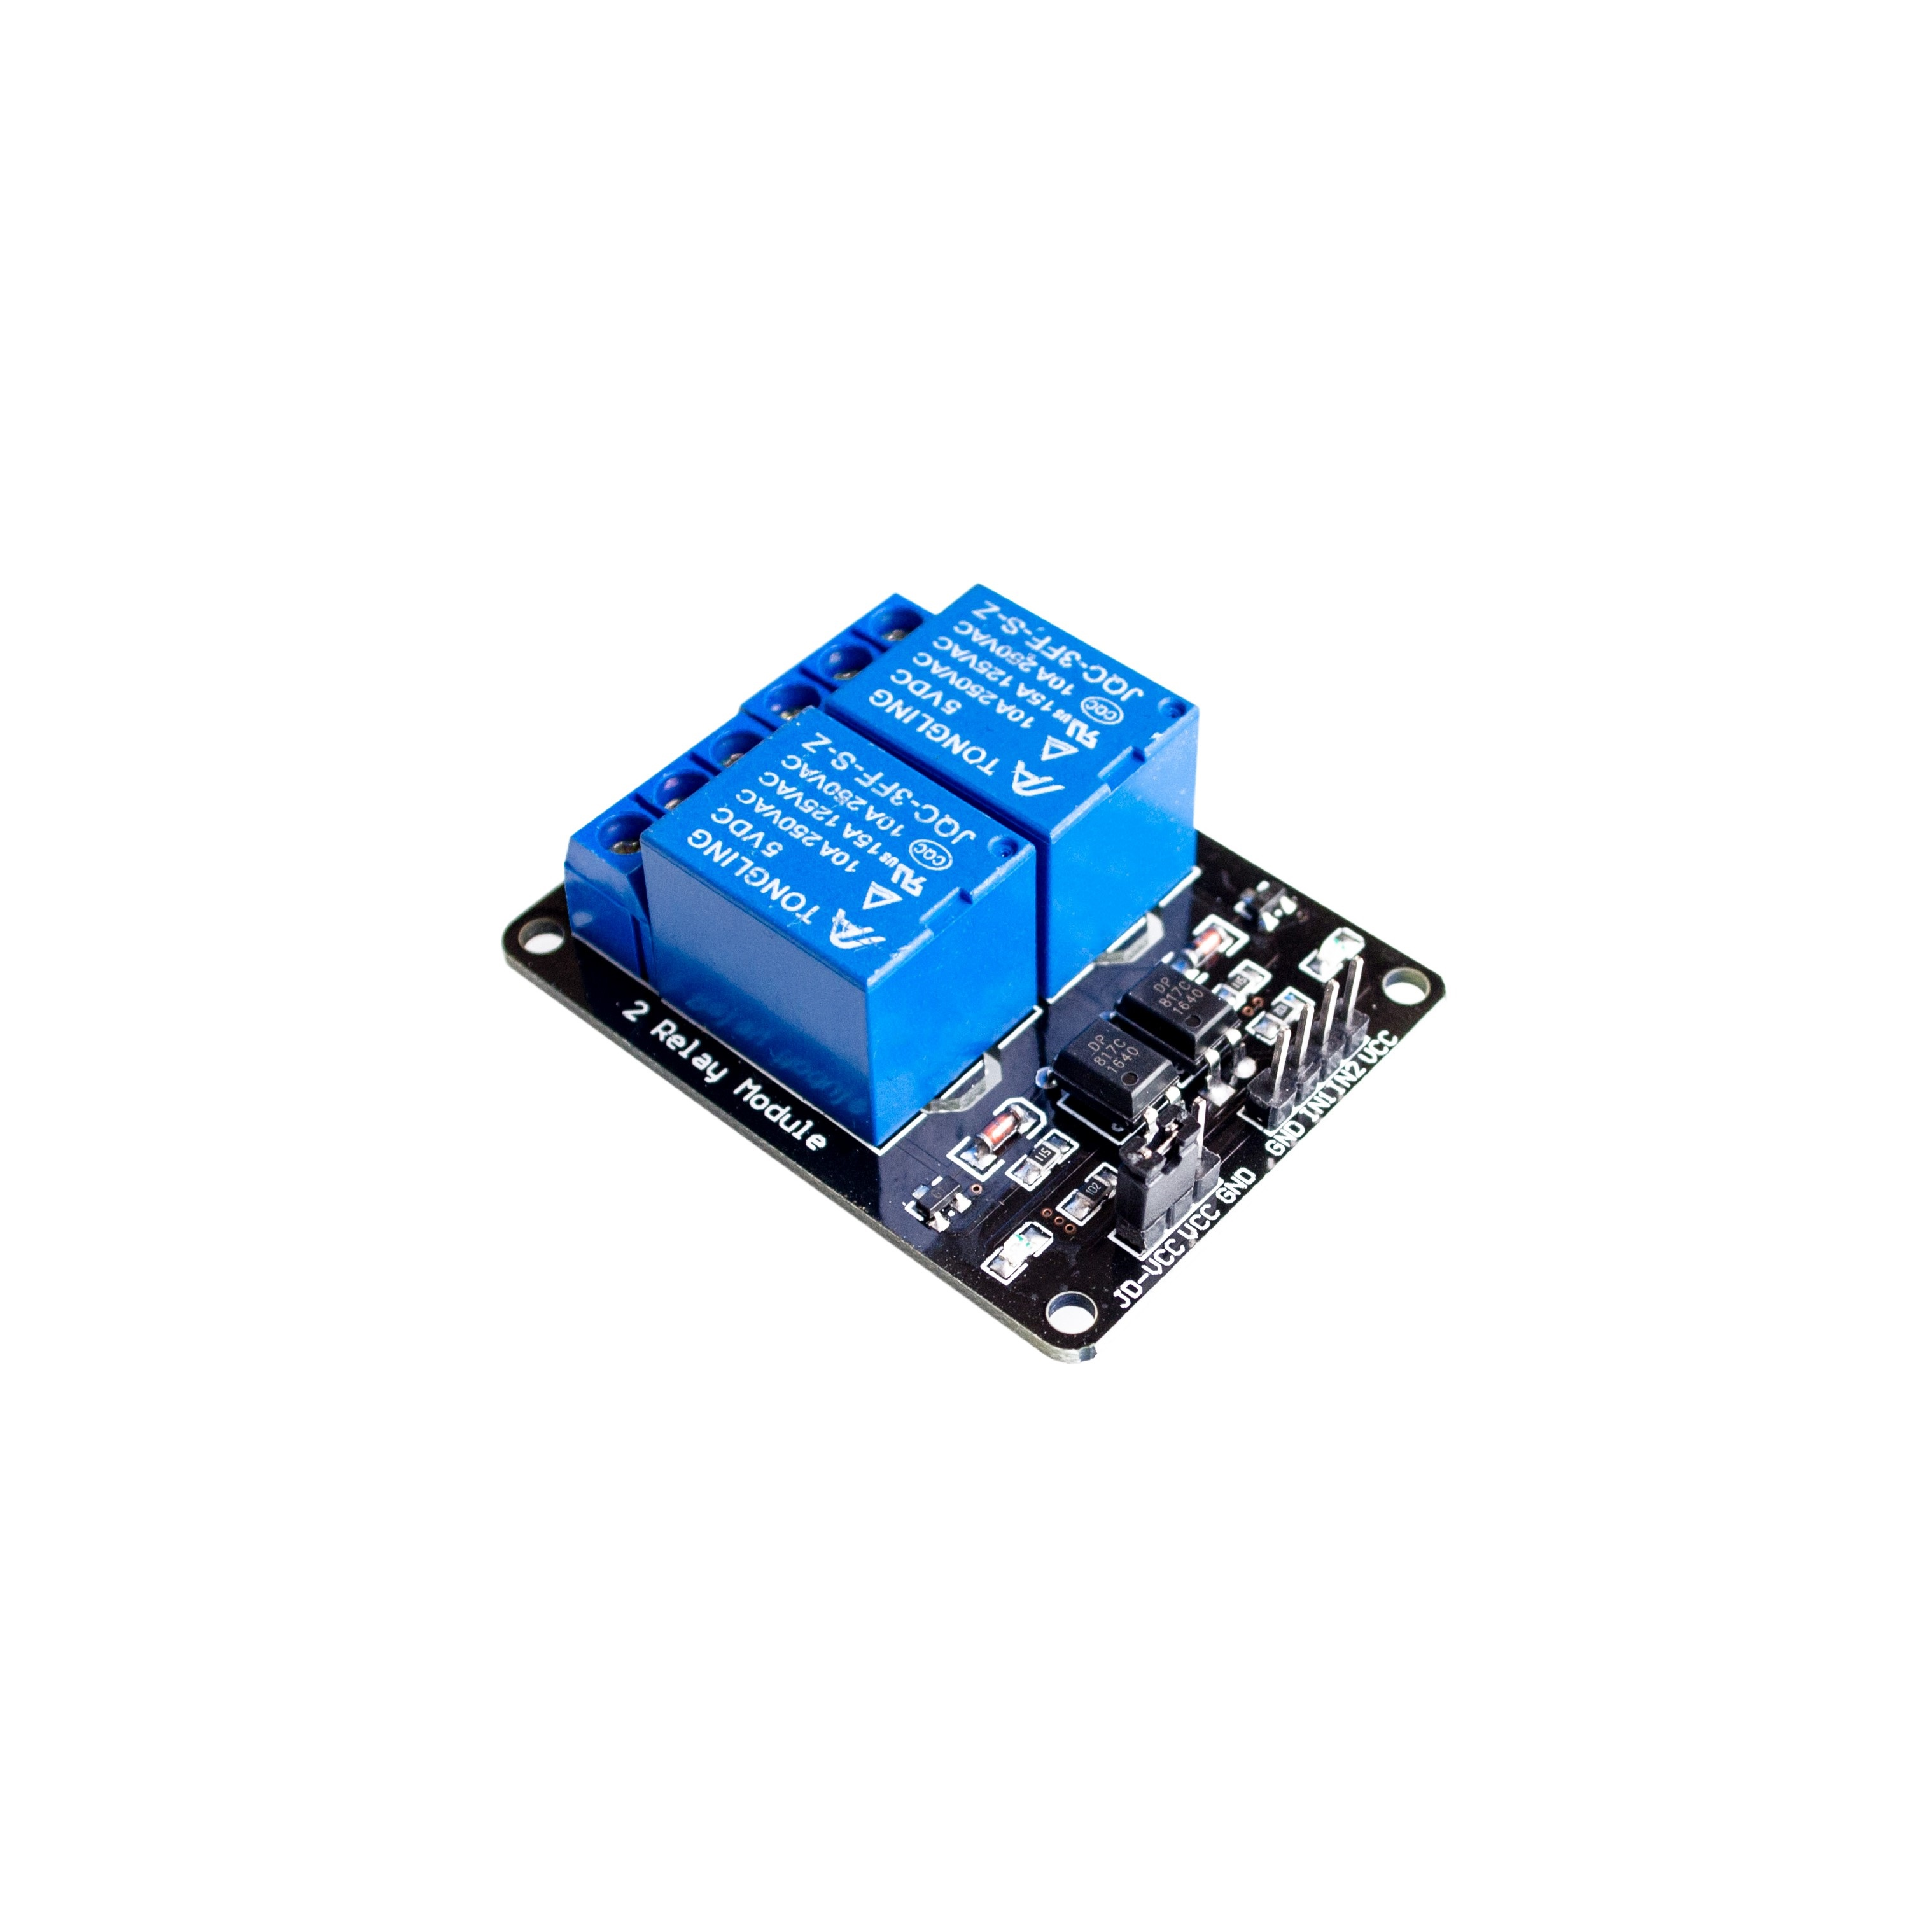 2 channel relay module relay expansion board for arduino 5V,可领取元淘宝优惠券